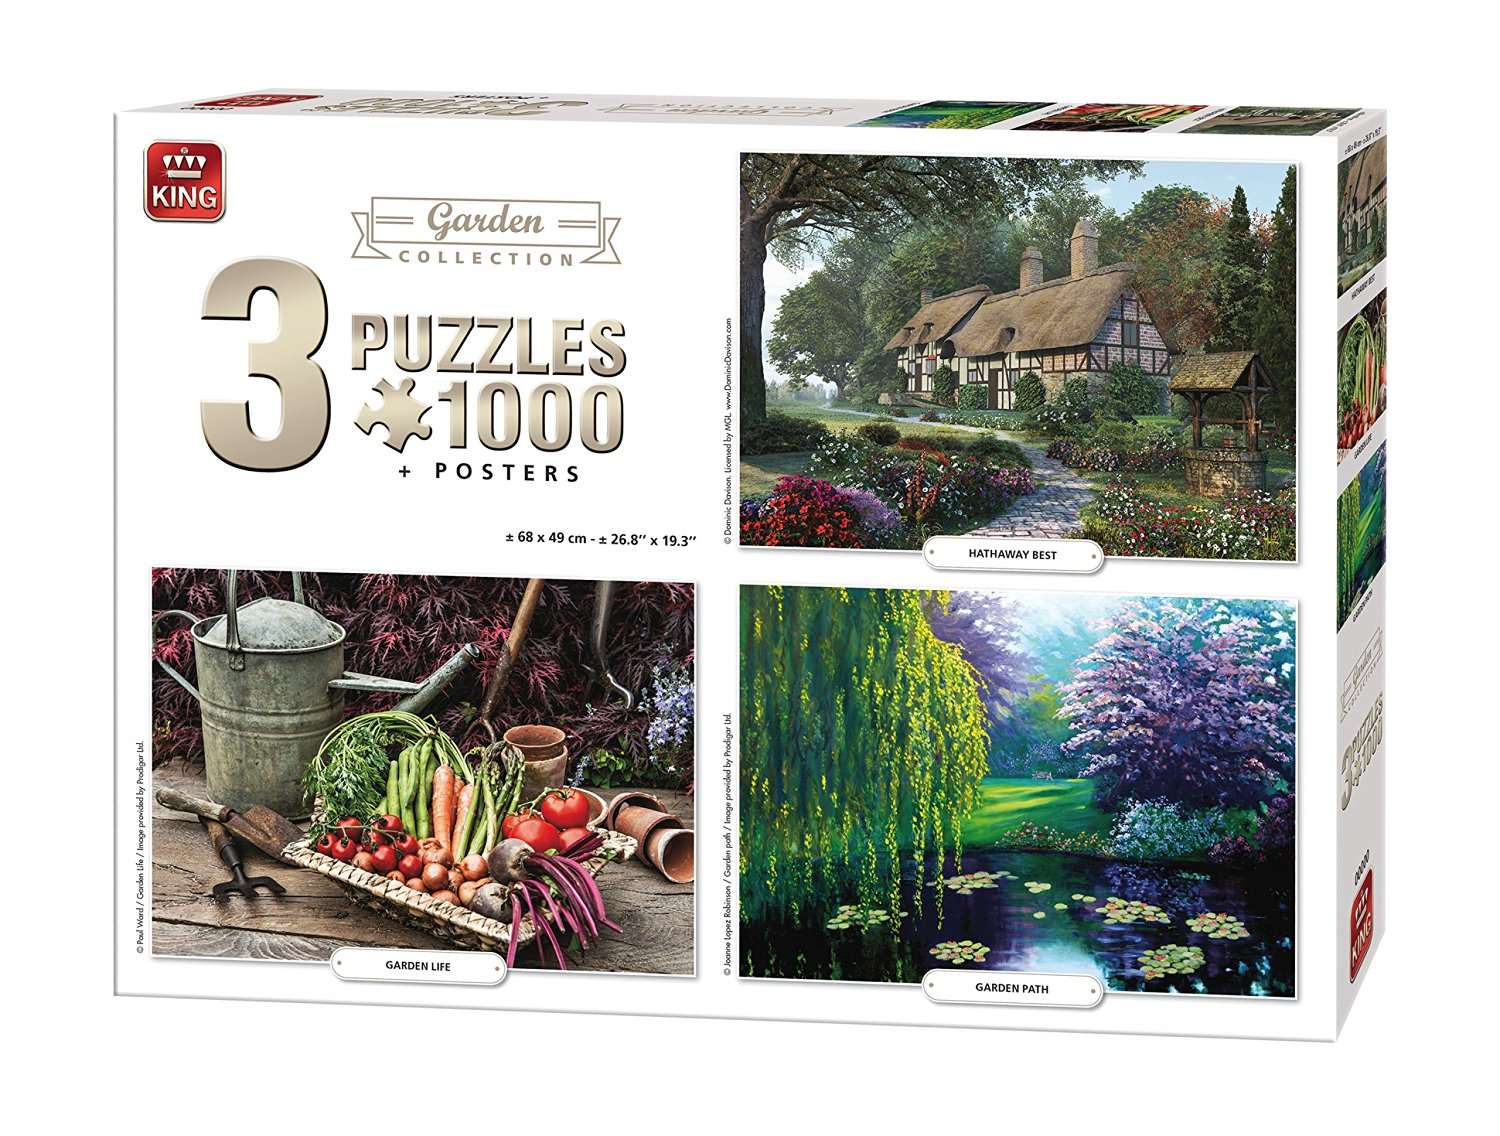 3-puzzles-garden-collection